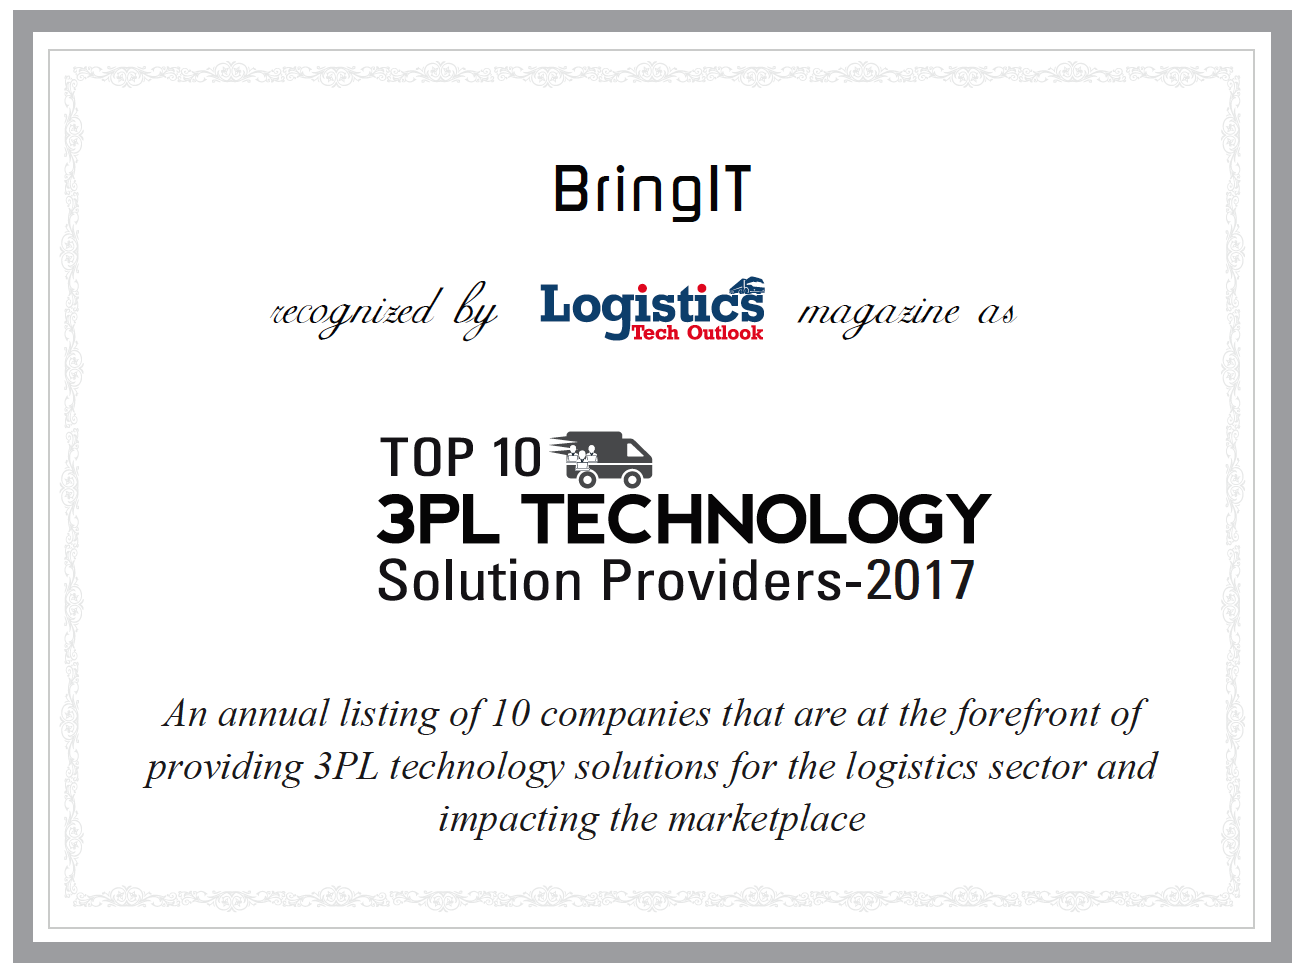 Bring IT Receives Logistics Technology Provider Recognition